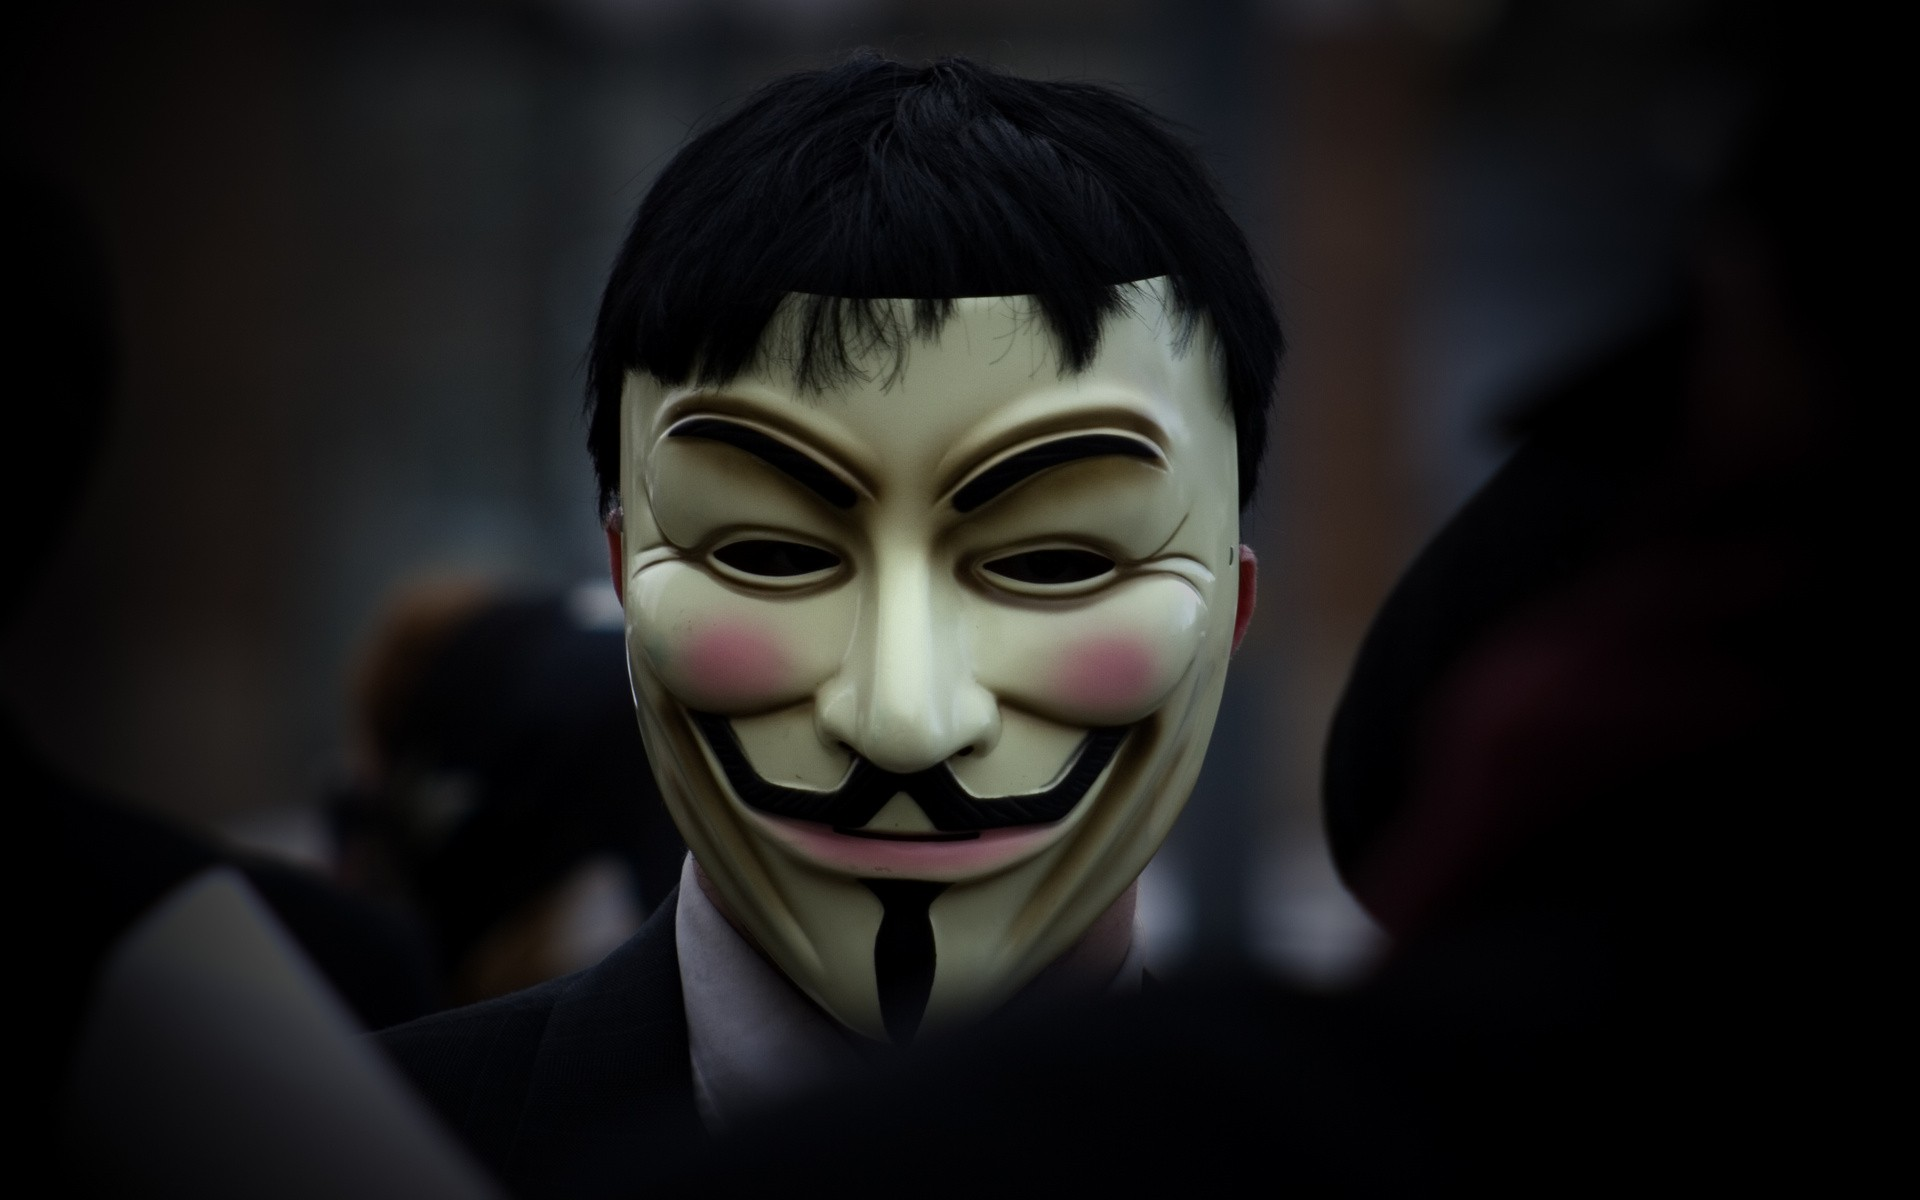 mask anonymous wallpaper free download hd 1933 wallpaper